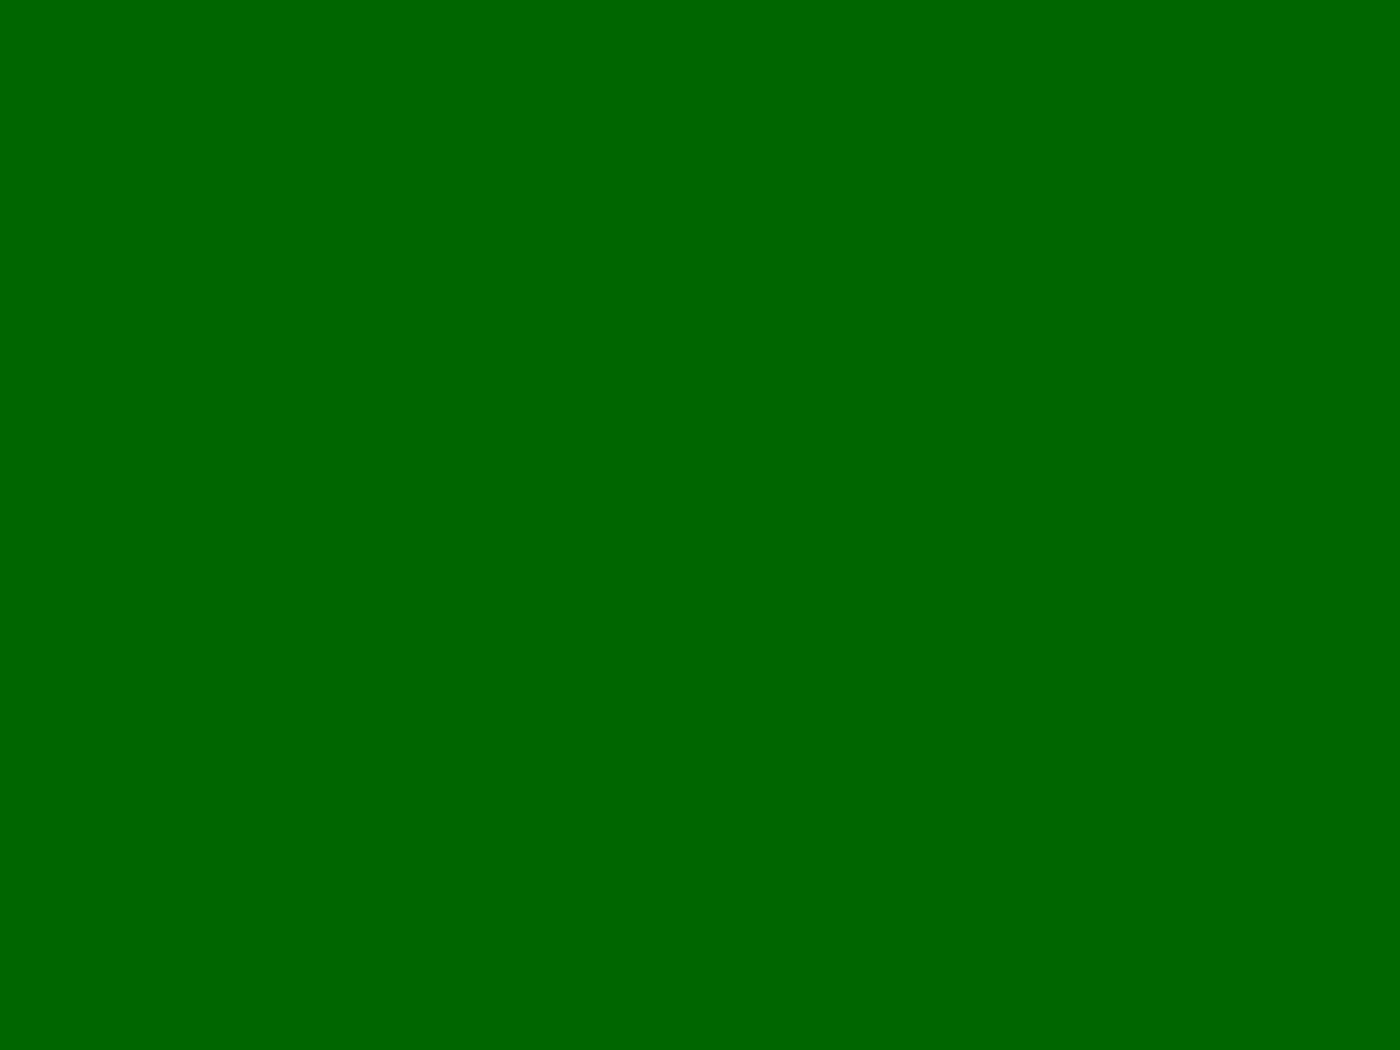 1400x1050 Pakistan Green Solid Color Background